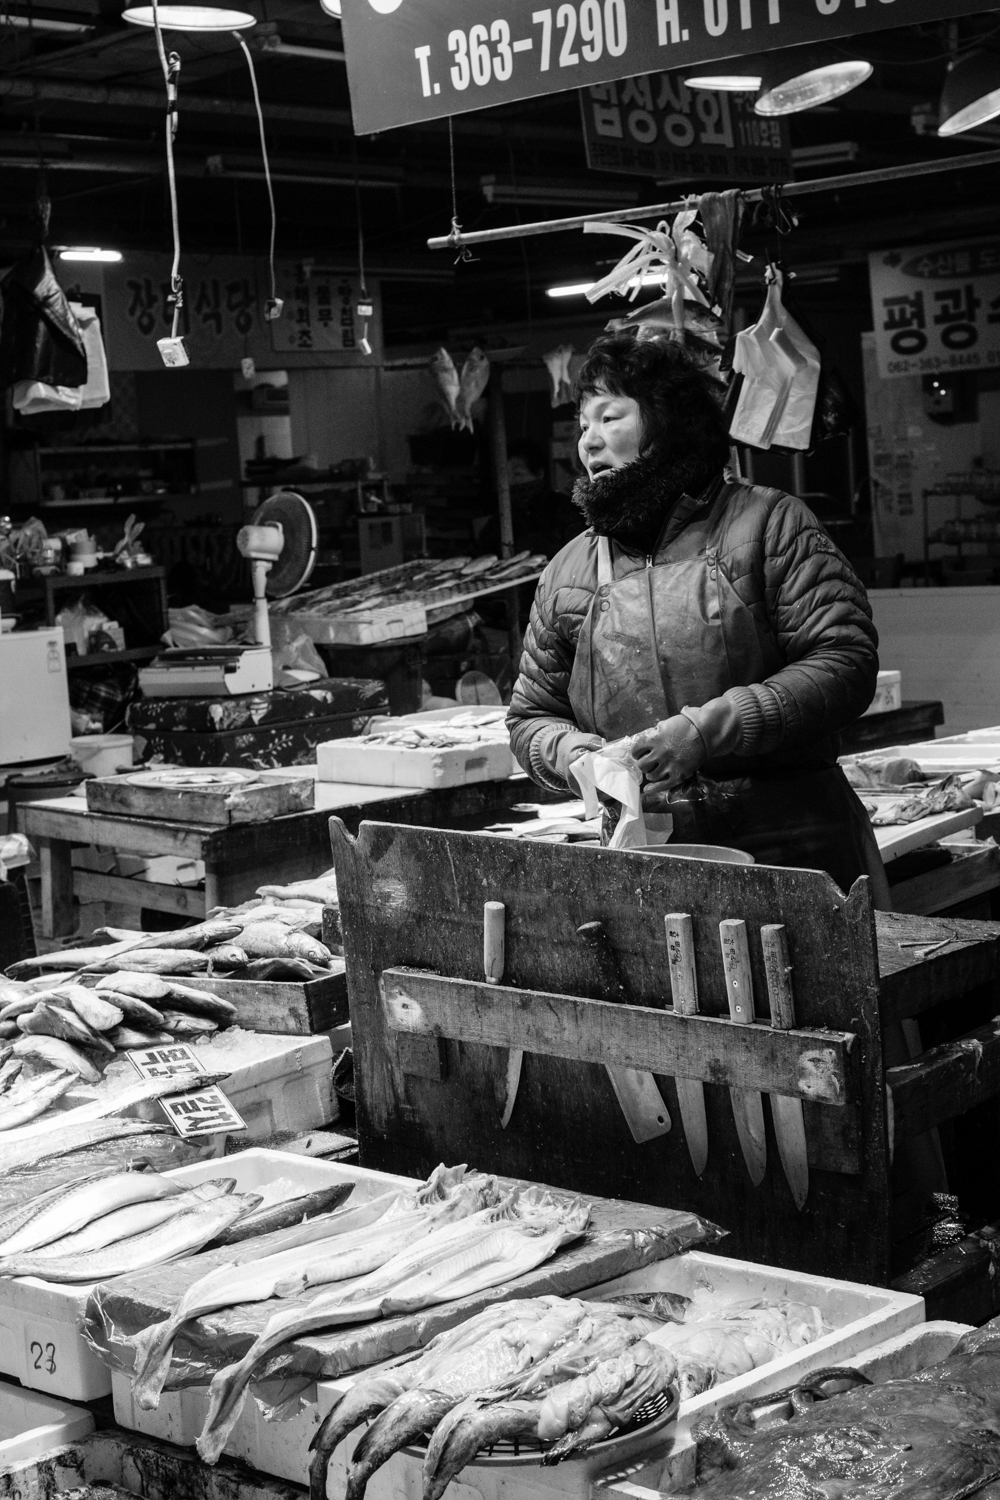 You do not want to mess with the fish vendors in Yang-dong market.